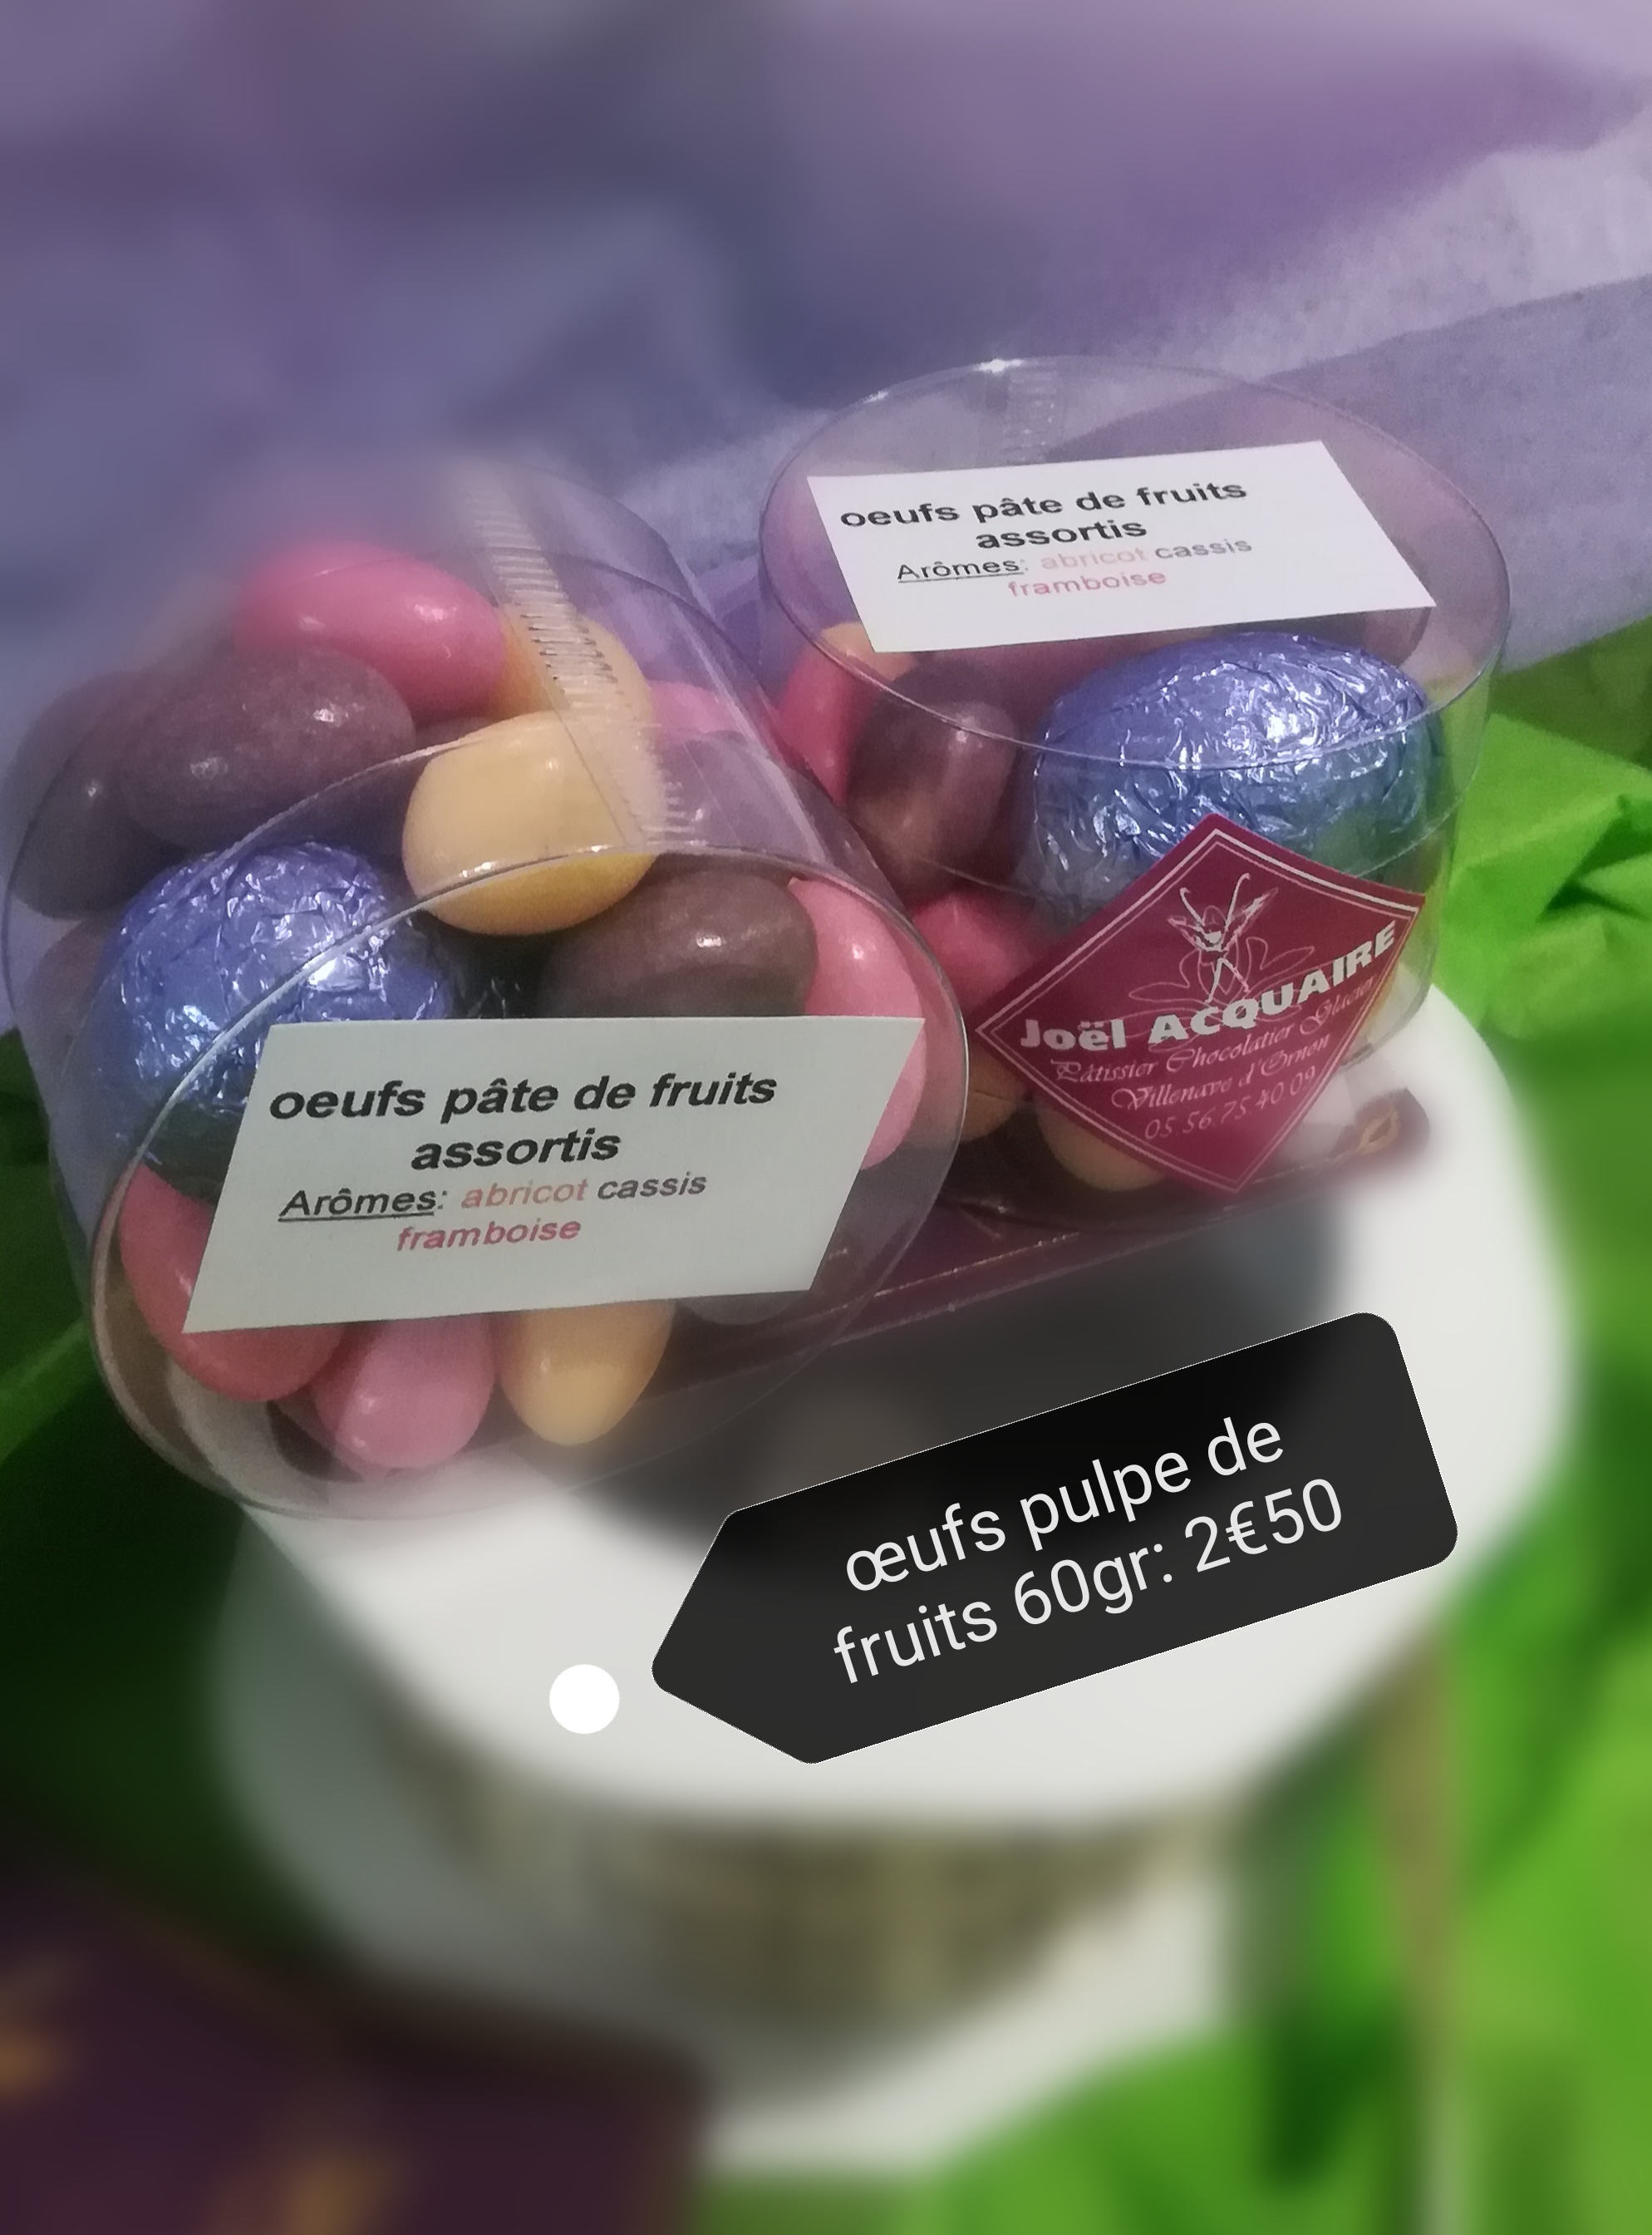 Les oeufs pulpes de fruits 60 gr